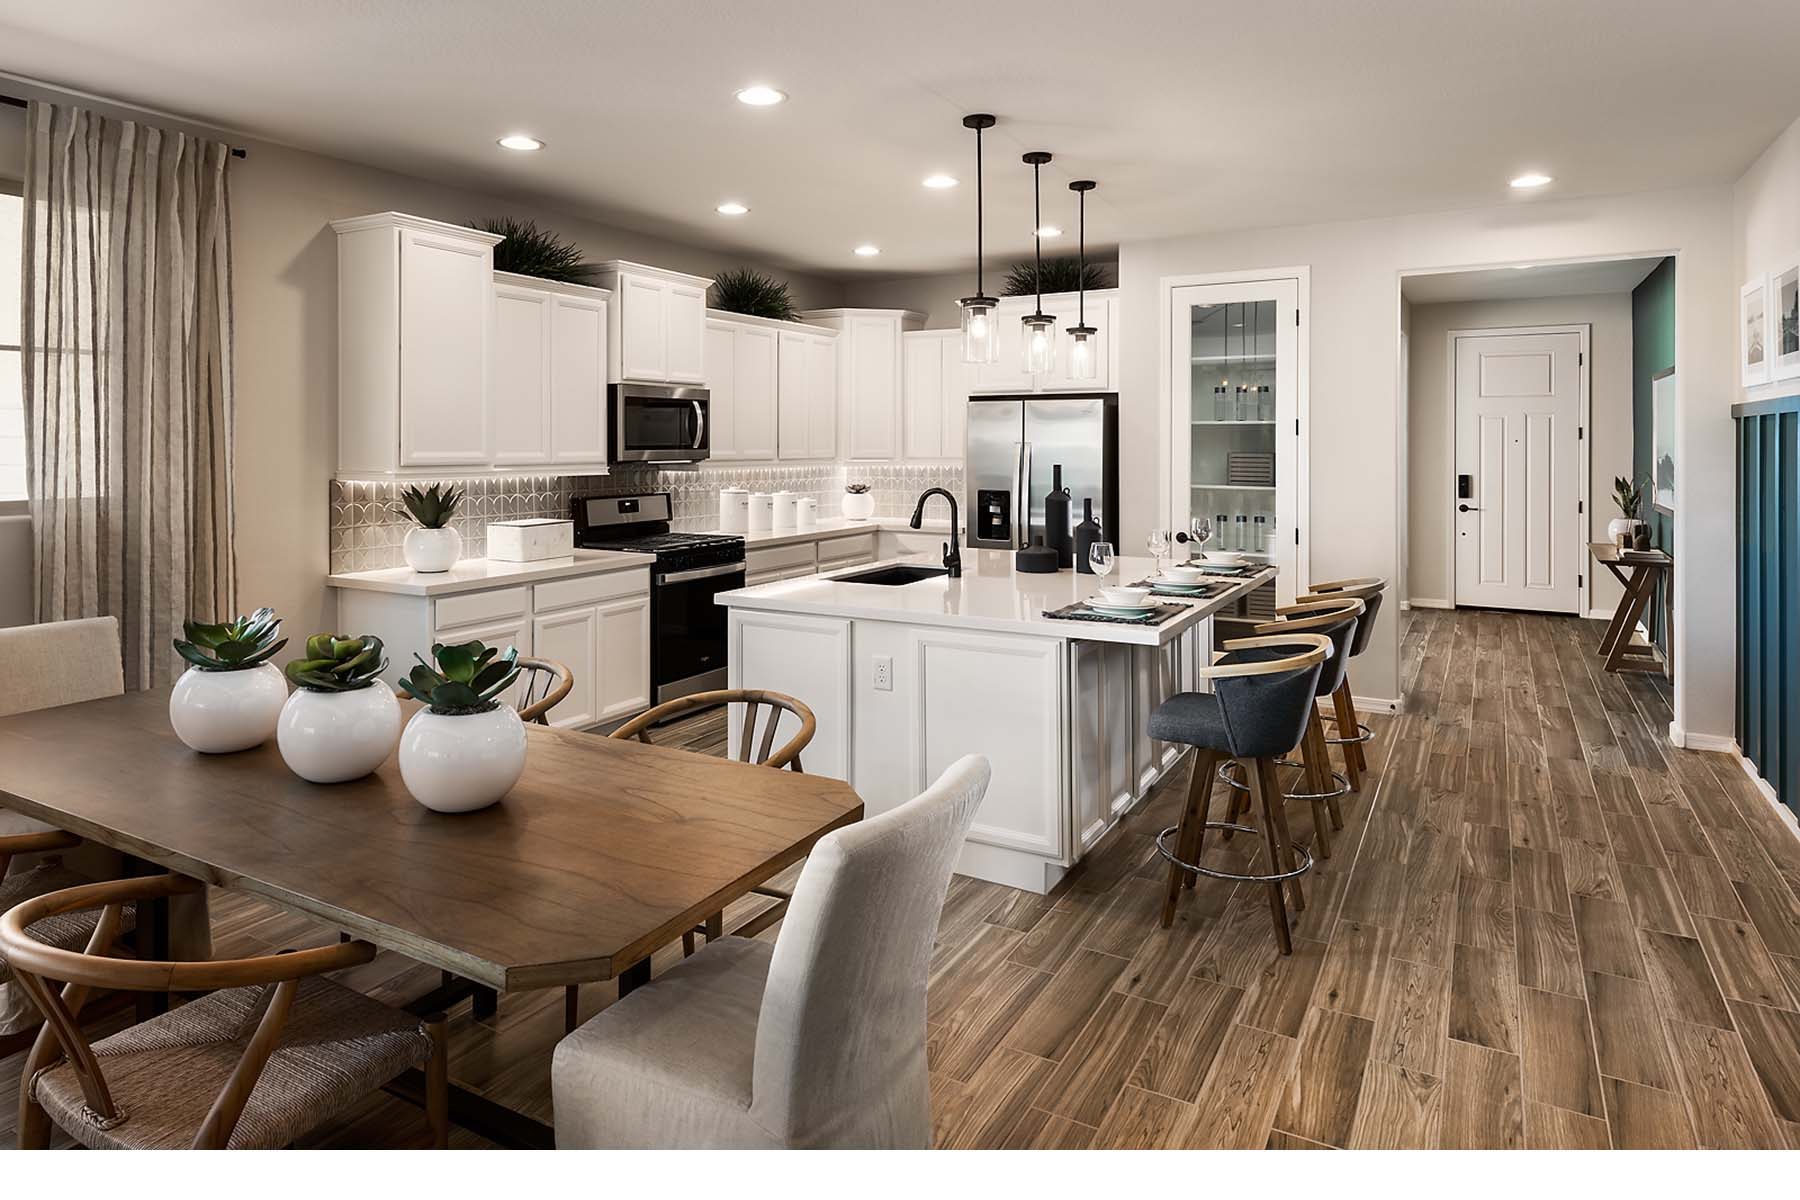 Everly Plan Kitchen at Brookside at Arroyo Seco in Buckeye Arizona by Mattamy Homes